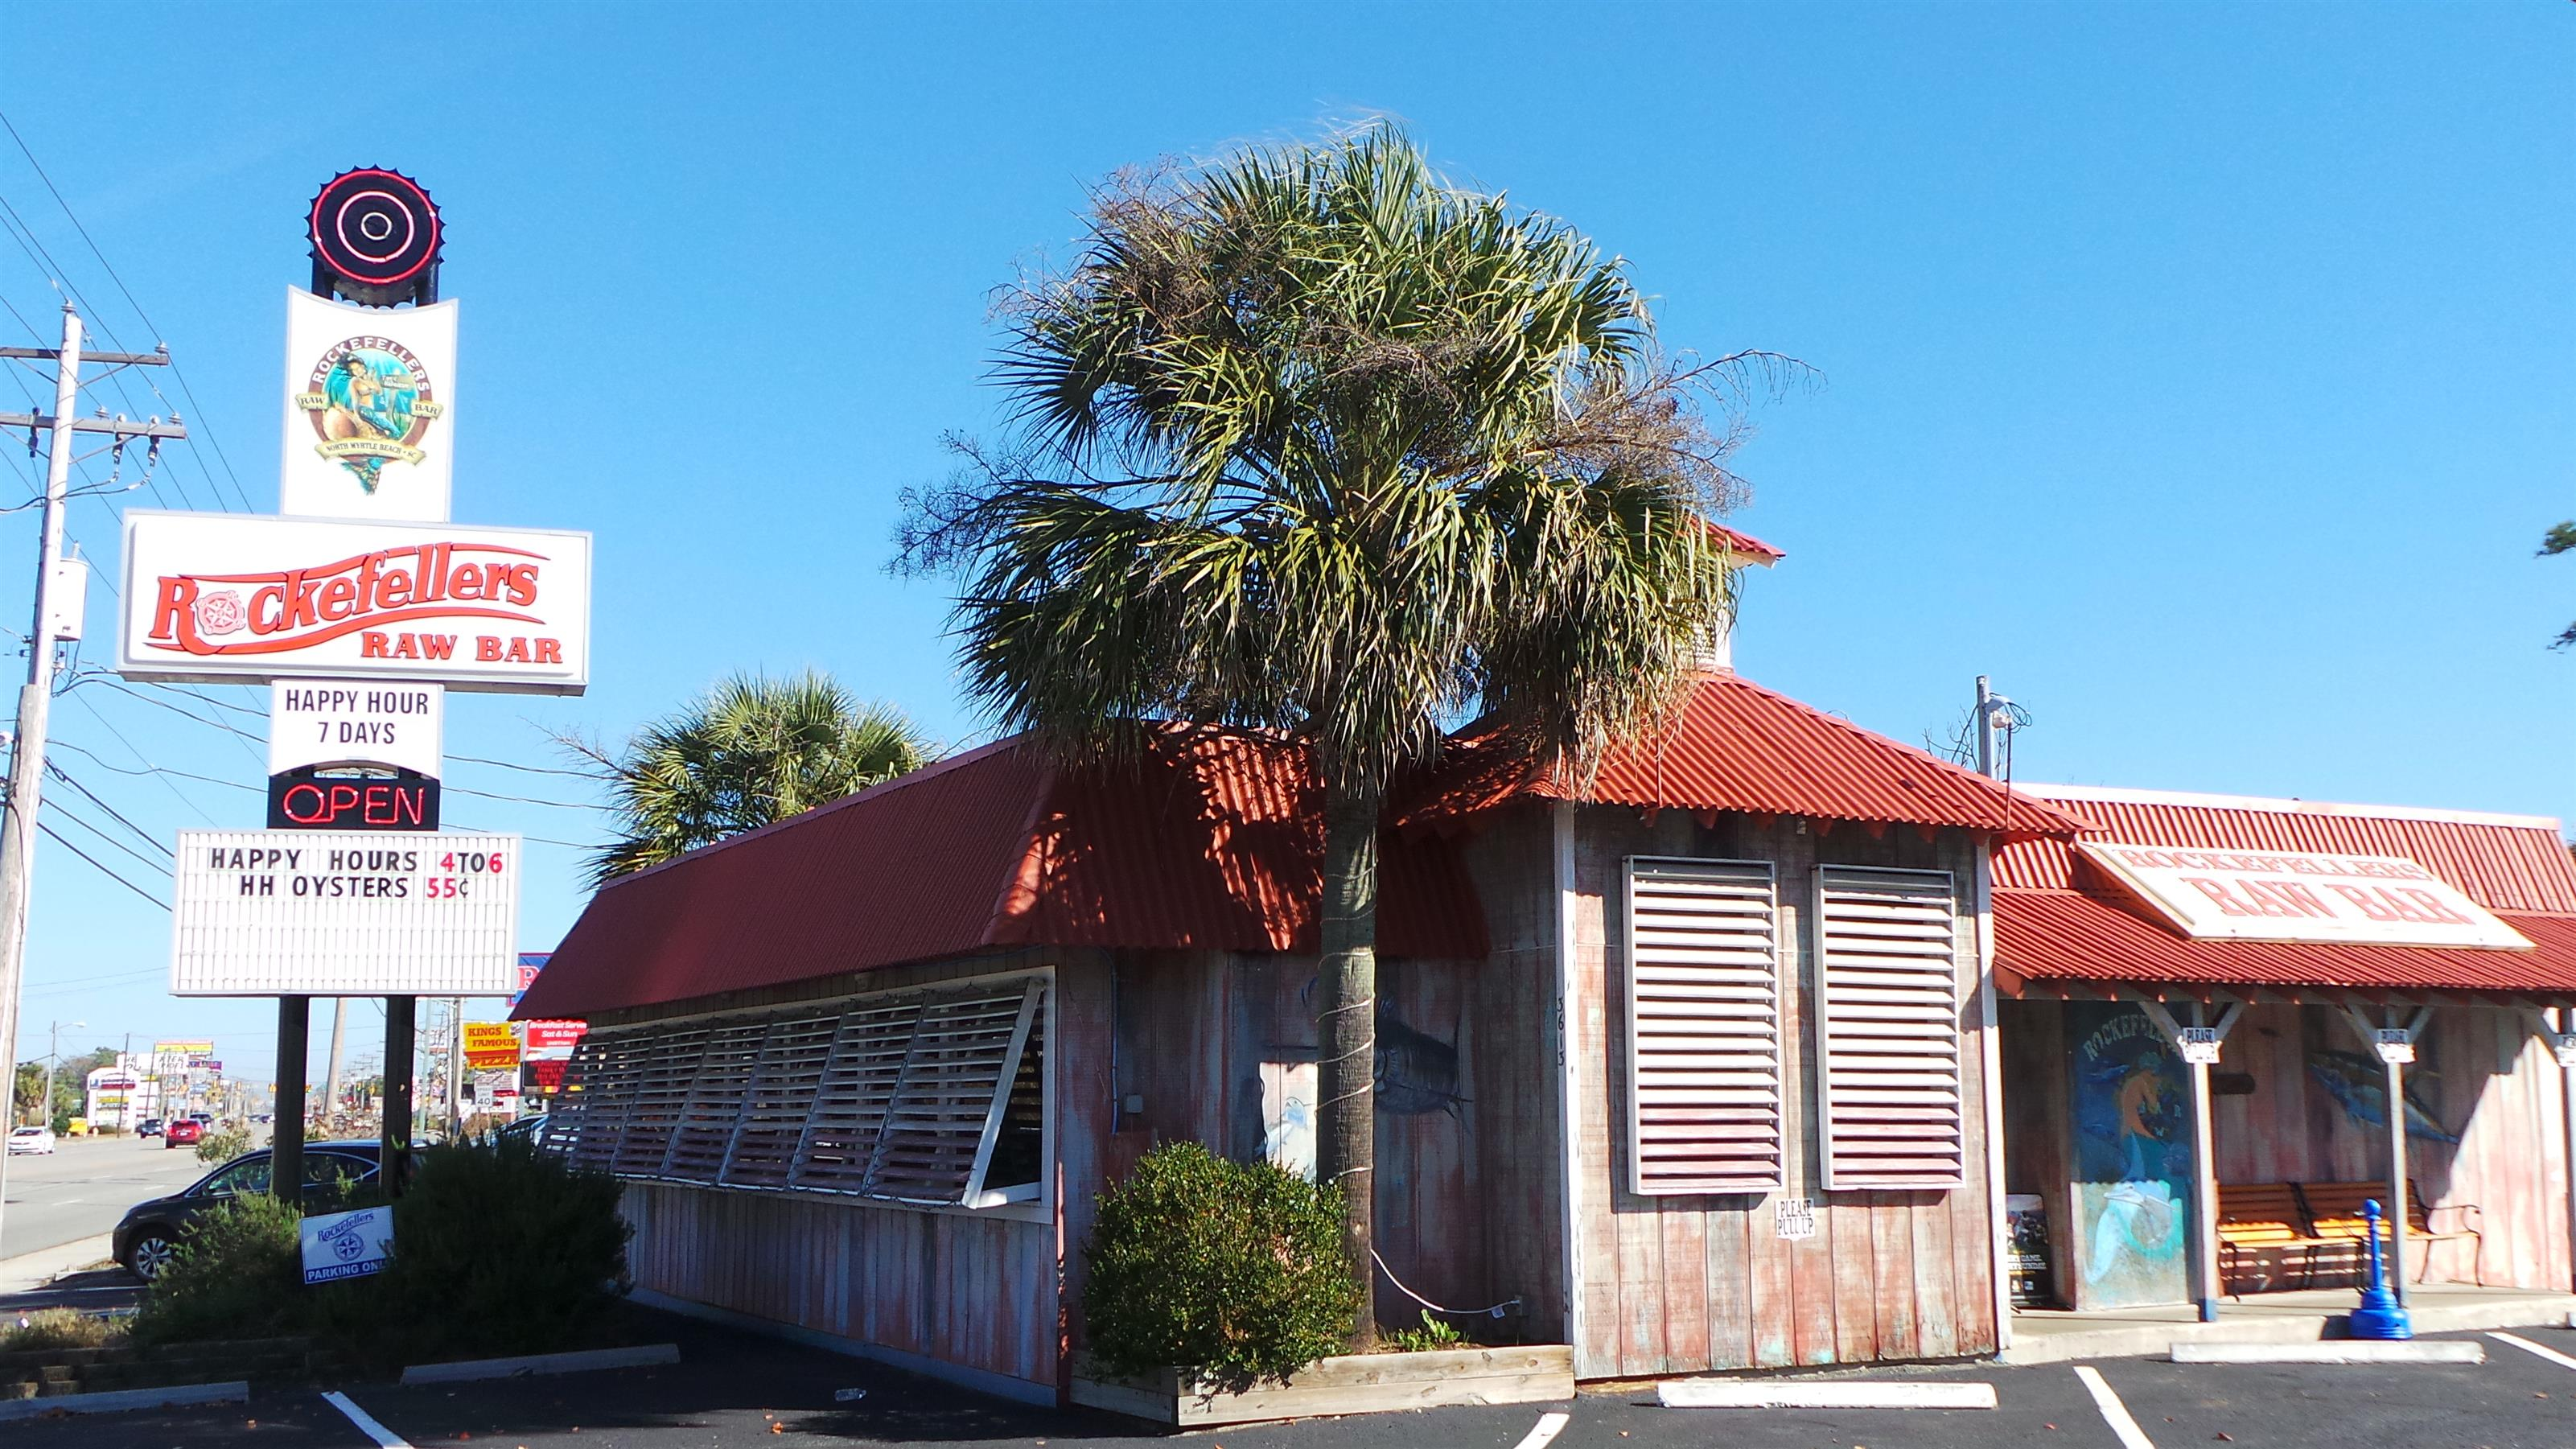 Wonderful The Grill House North Myrtle Beach Part - 4: Rockefellers Raw Bar - Home